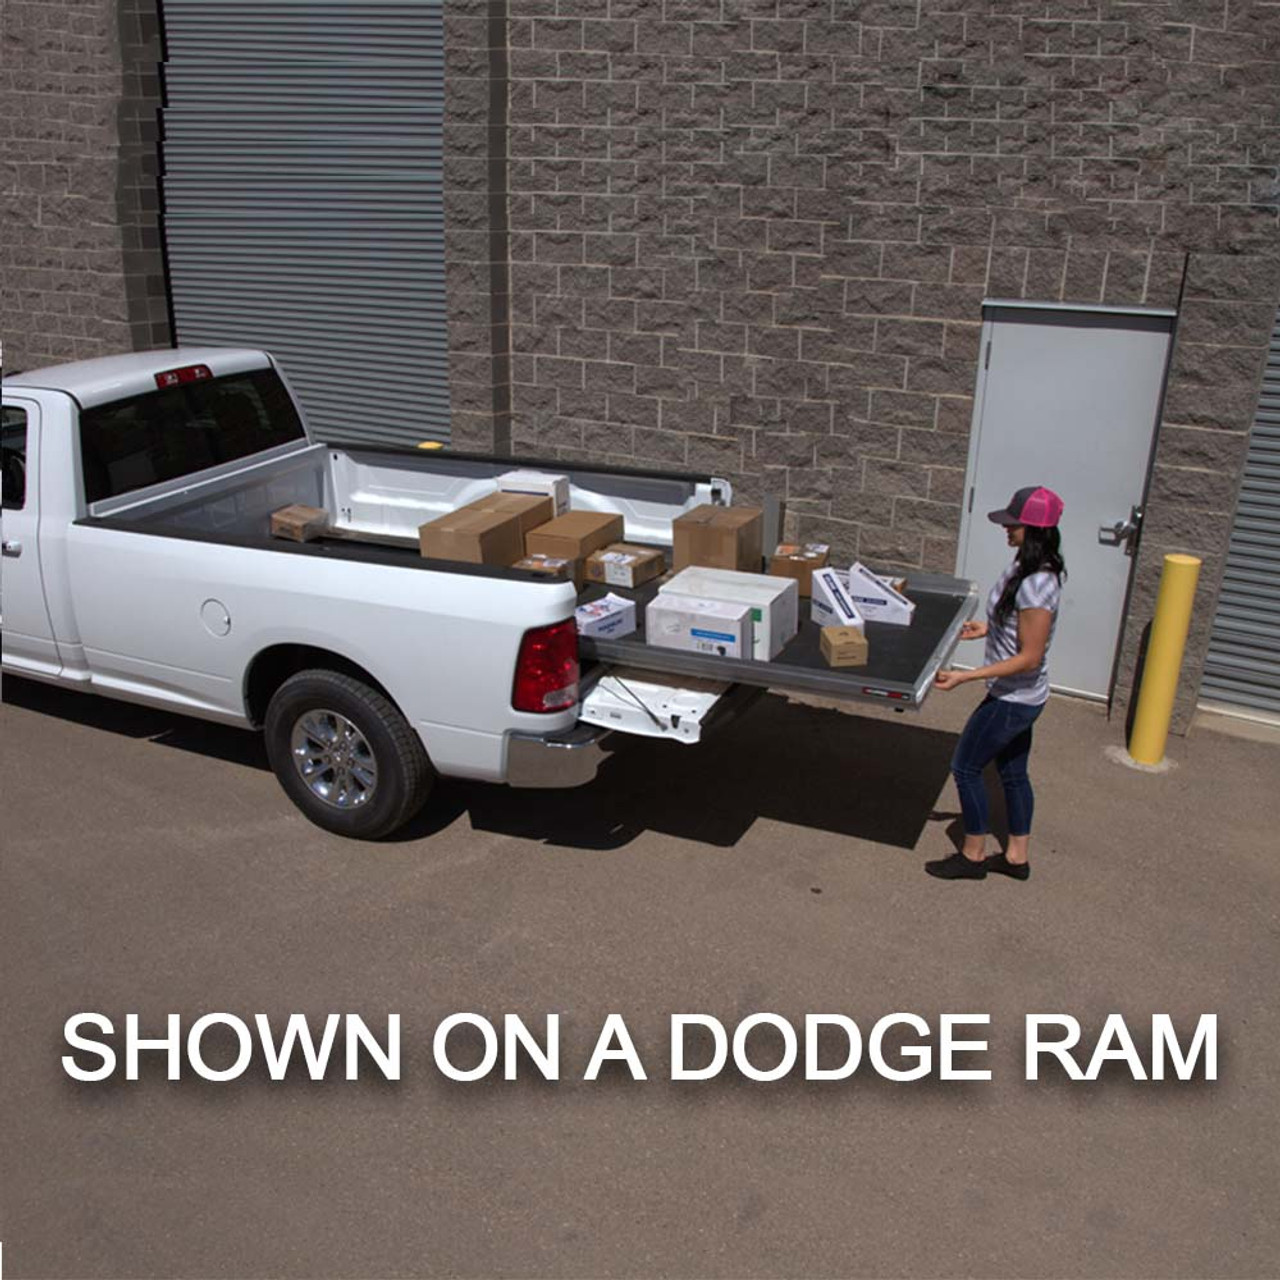 """Cargo-Glide CG1000 Ford Raptor, Steel Truck-Bed Slide and Extender, 1000 lb capacity, 65-75% Extension, 4"""" side rails, 3.875"""" deck height, includes installation kit"""